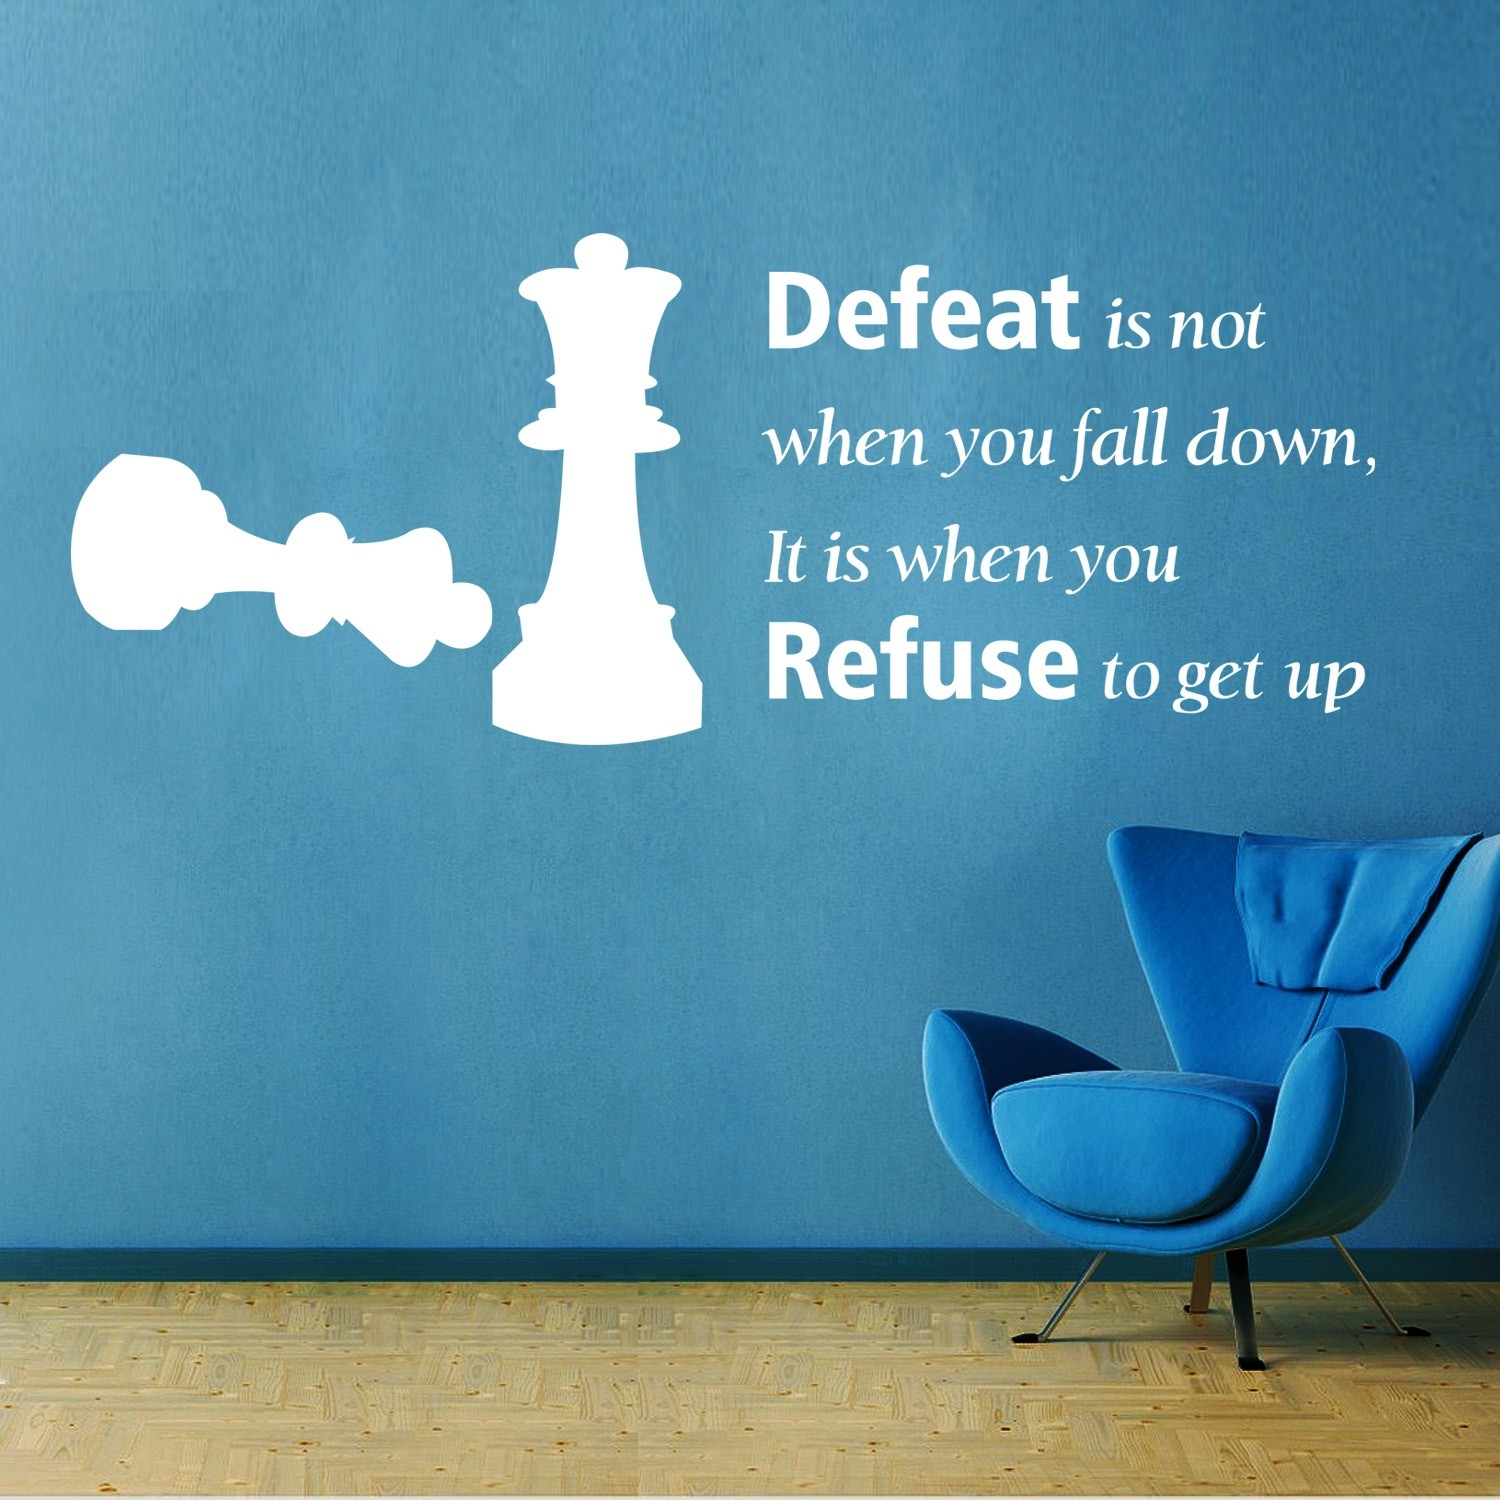 Defeat Quote Wall Sticker Decal-Small-White